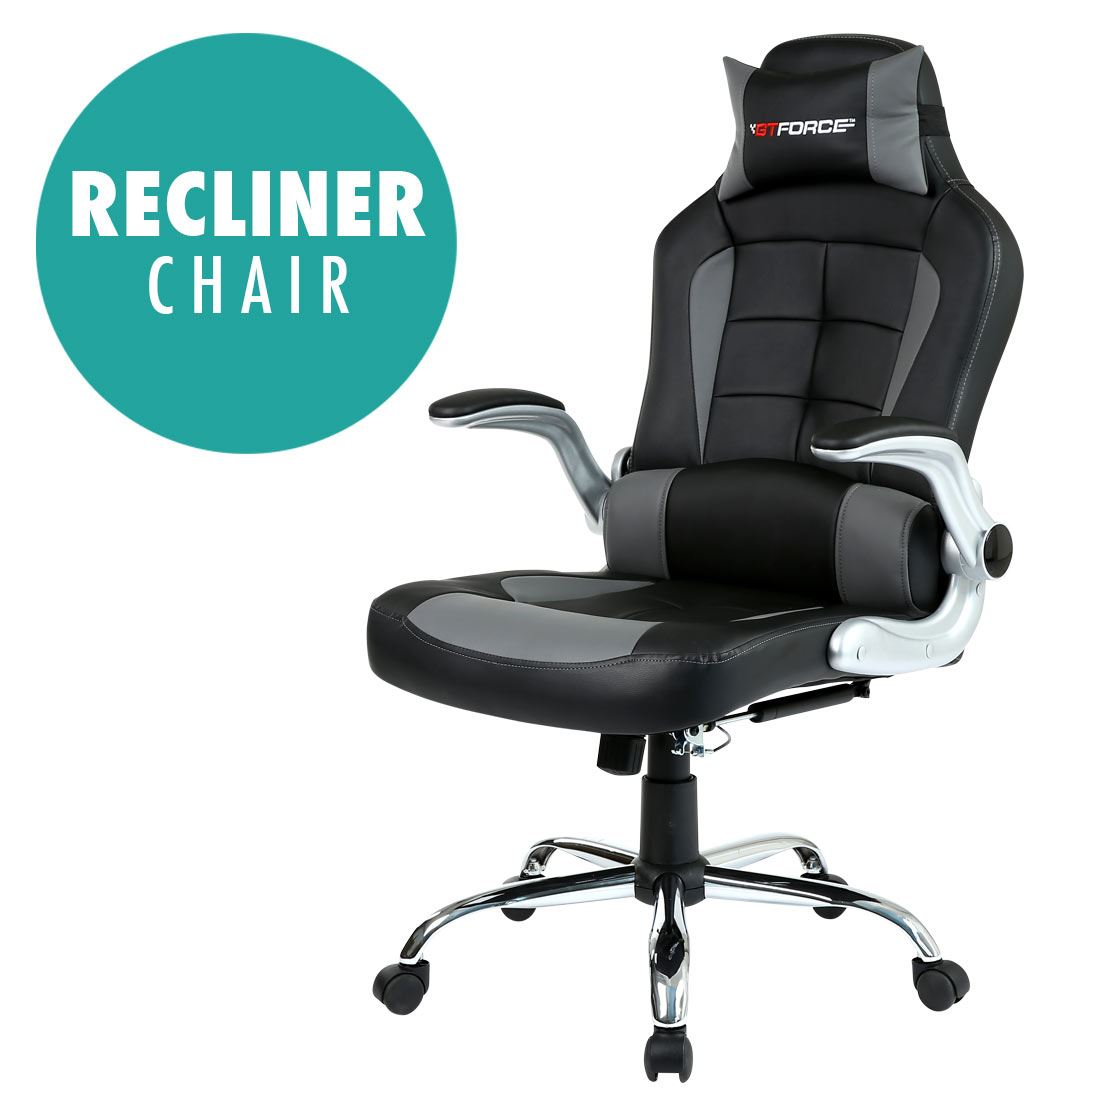 pcok chairs chair recliner amazon with bonded com viva deluxe executive reclining leather office co